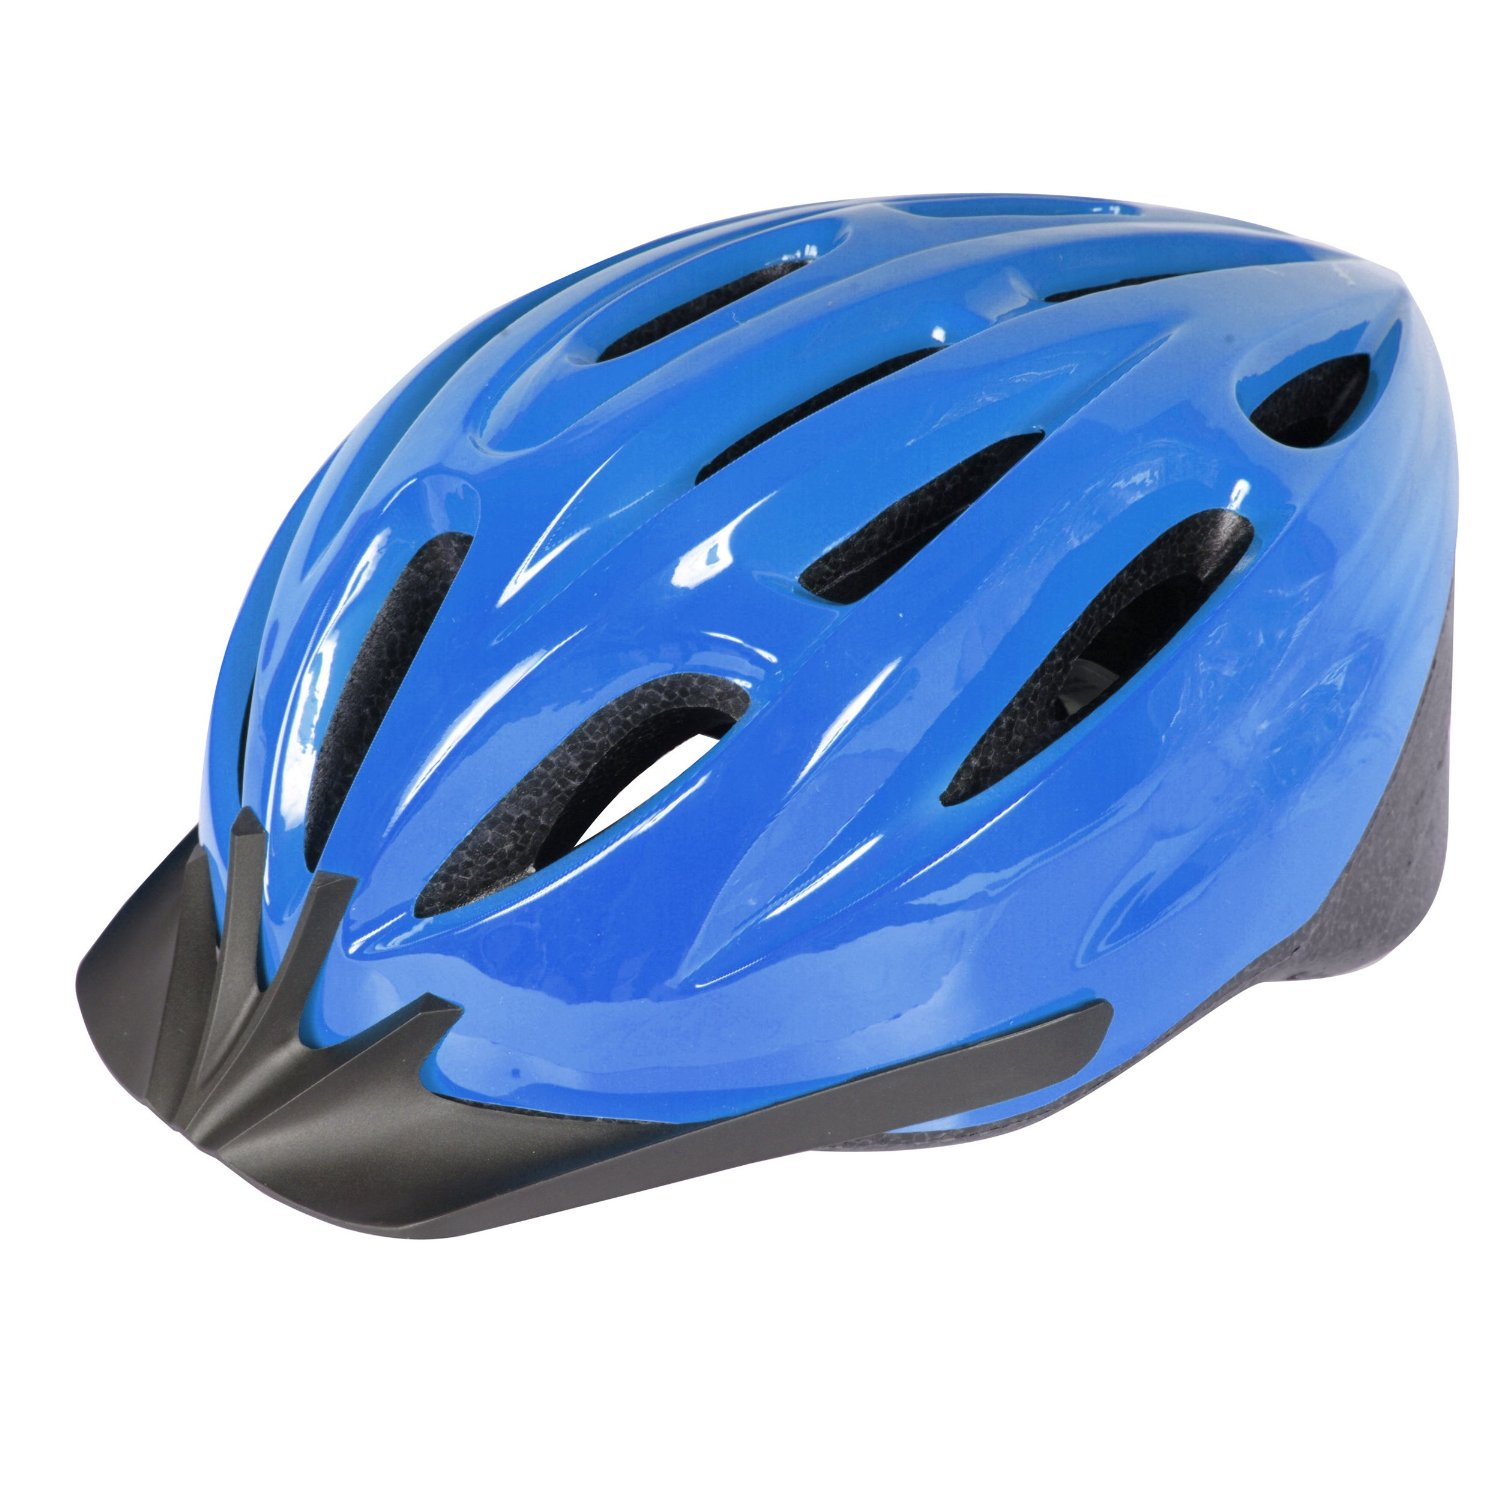 Adults Cycle Force Bicycle Helmets